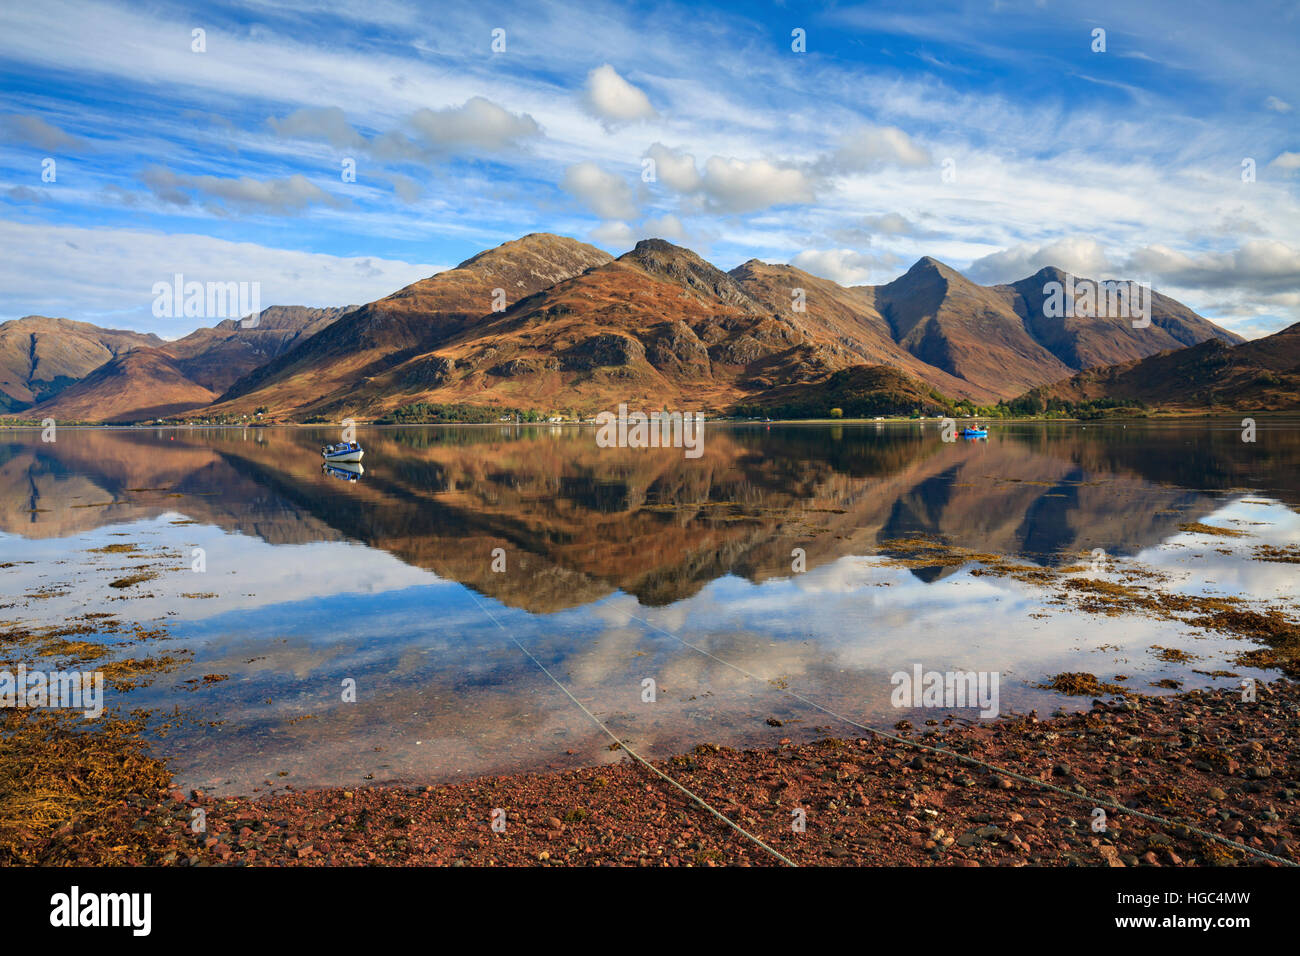 The Five Sisters of Glen Shiel reflected in Loch Duich. - Stock Image